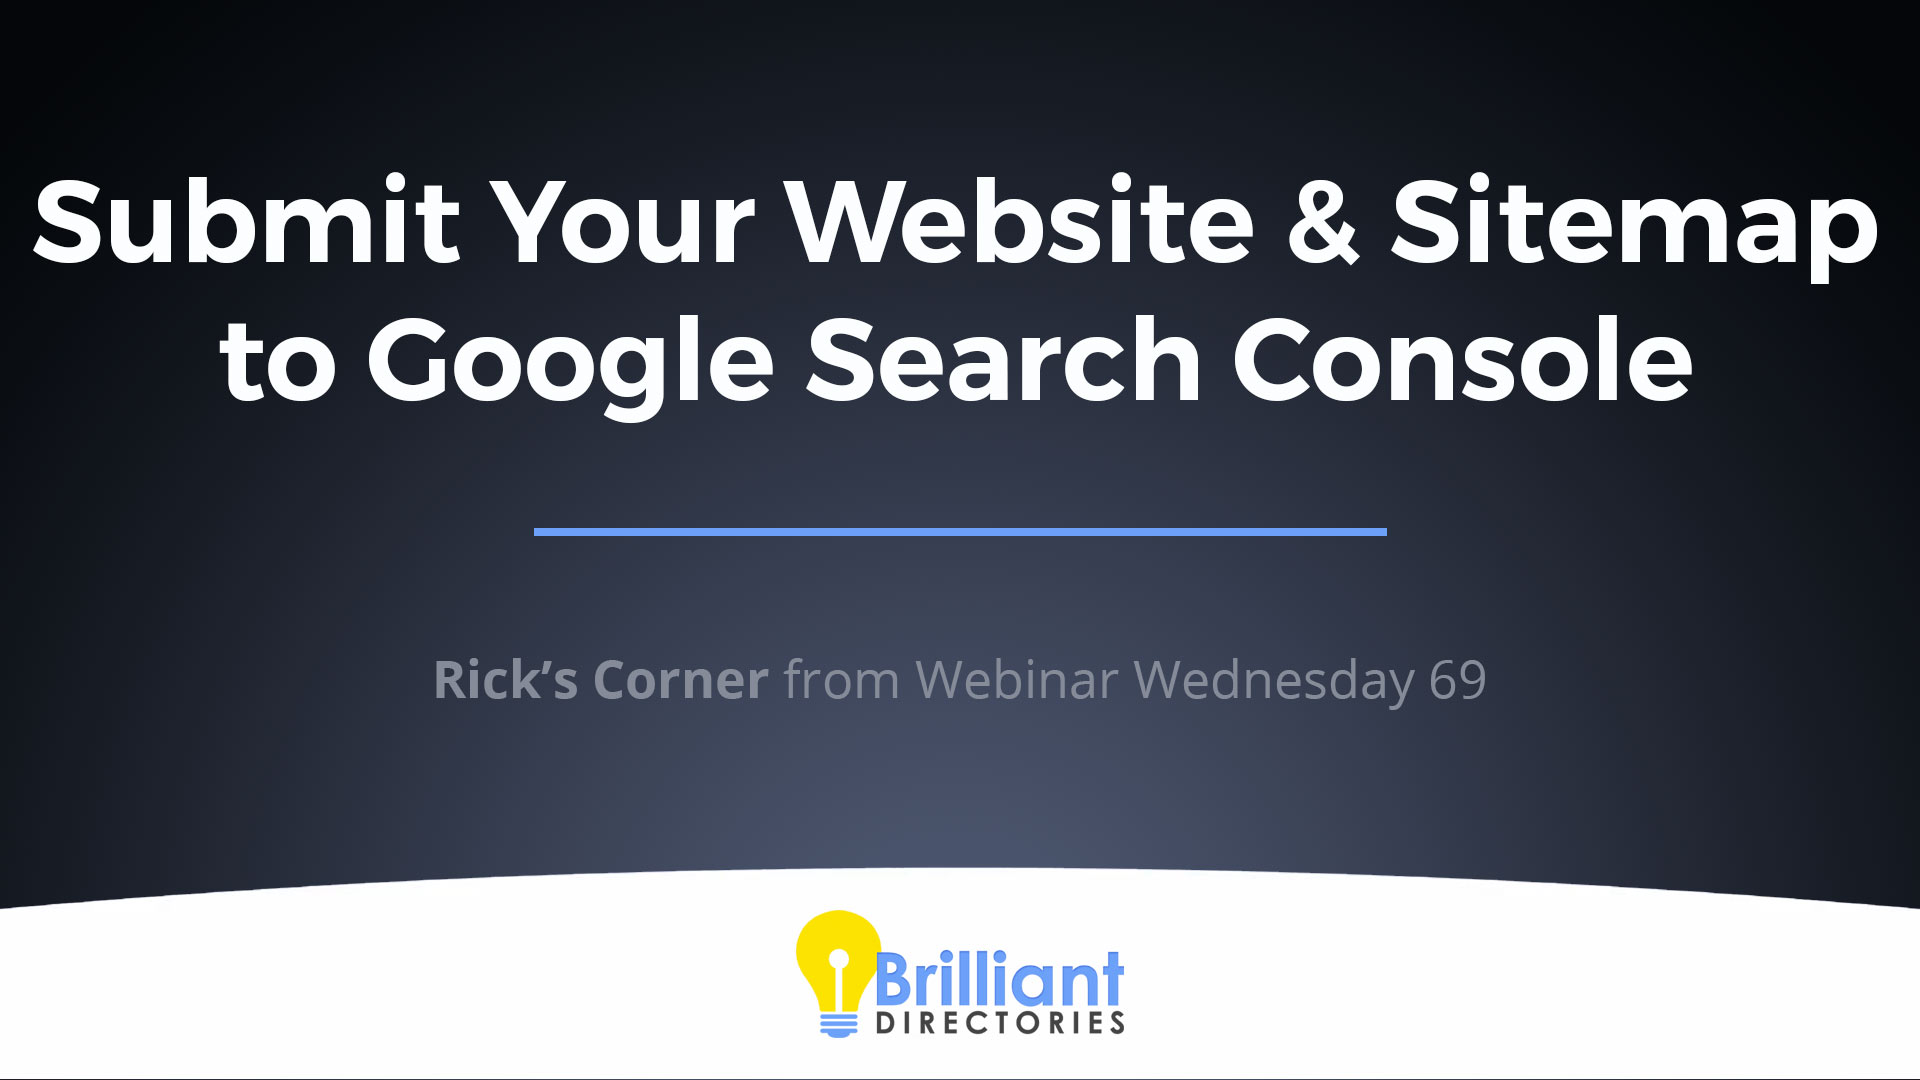 https://www.brilliantdirectories.com/blog/how-to-submit-your-website-and-sitemap-to-google-search-console